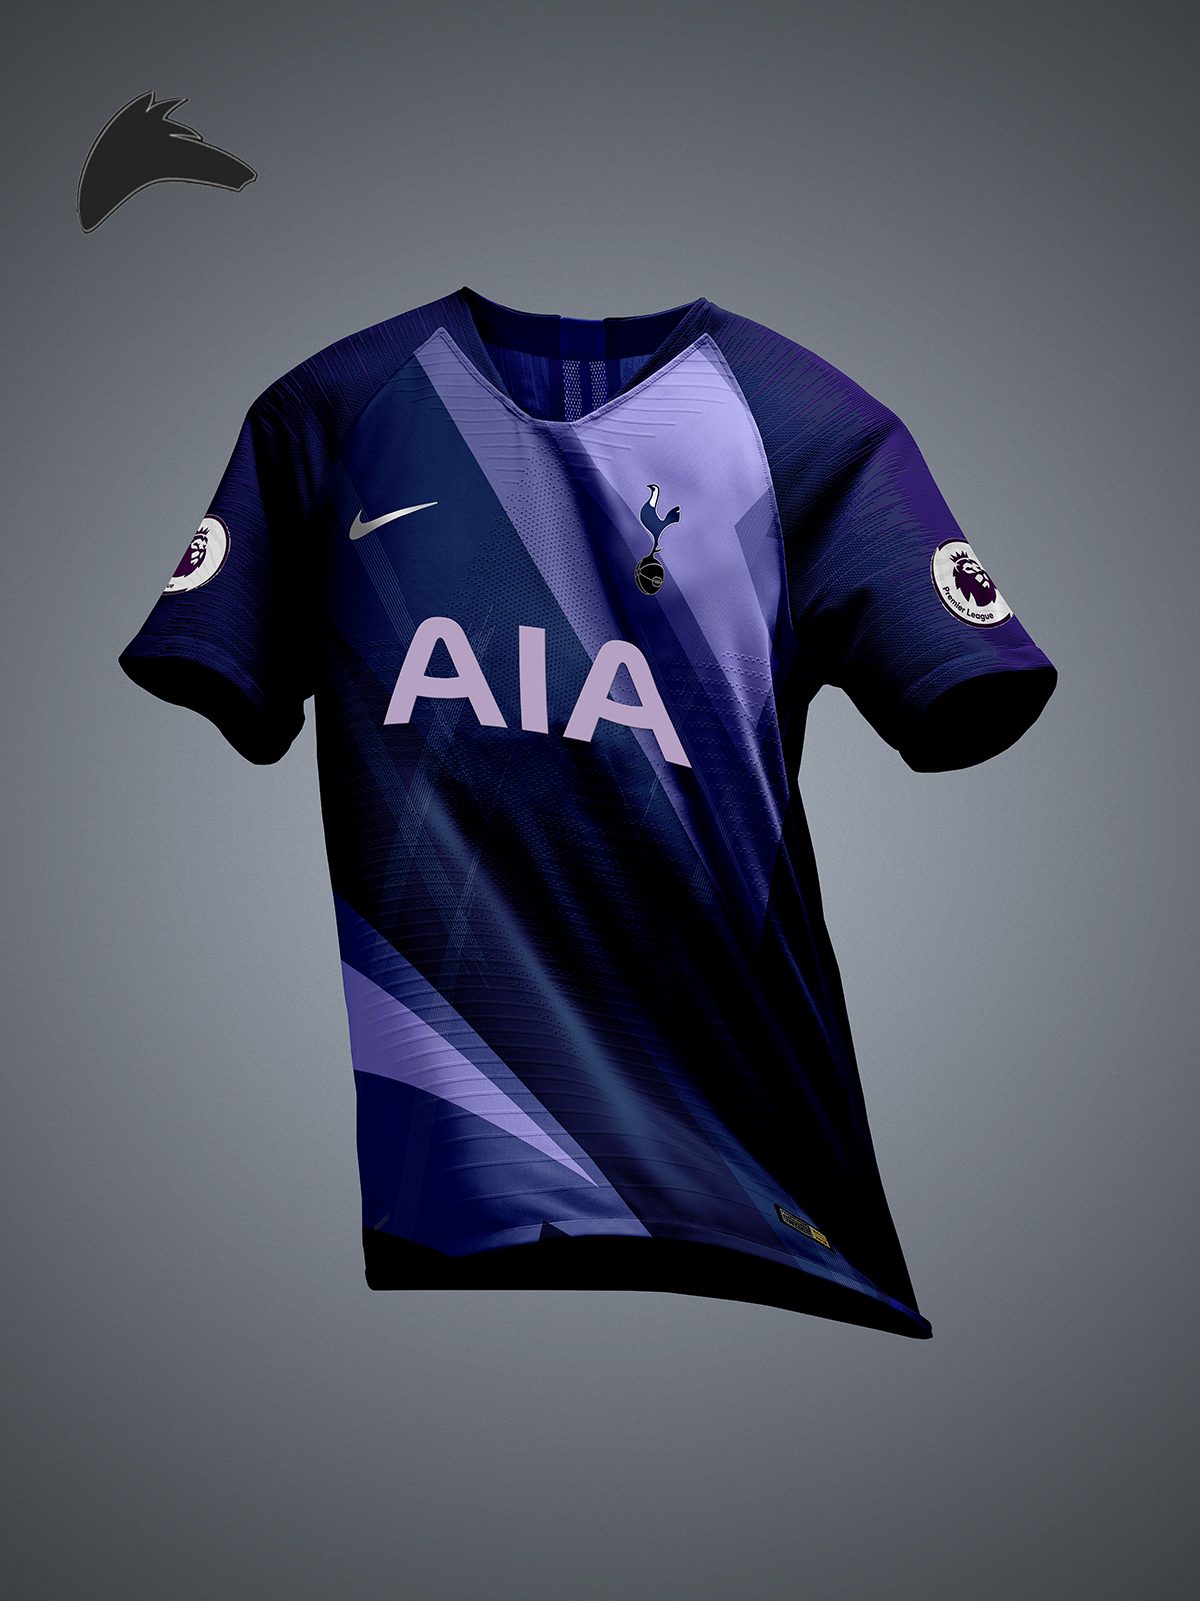 check out 7b9d9 cc989 Spurs 19-20 concept away